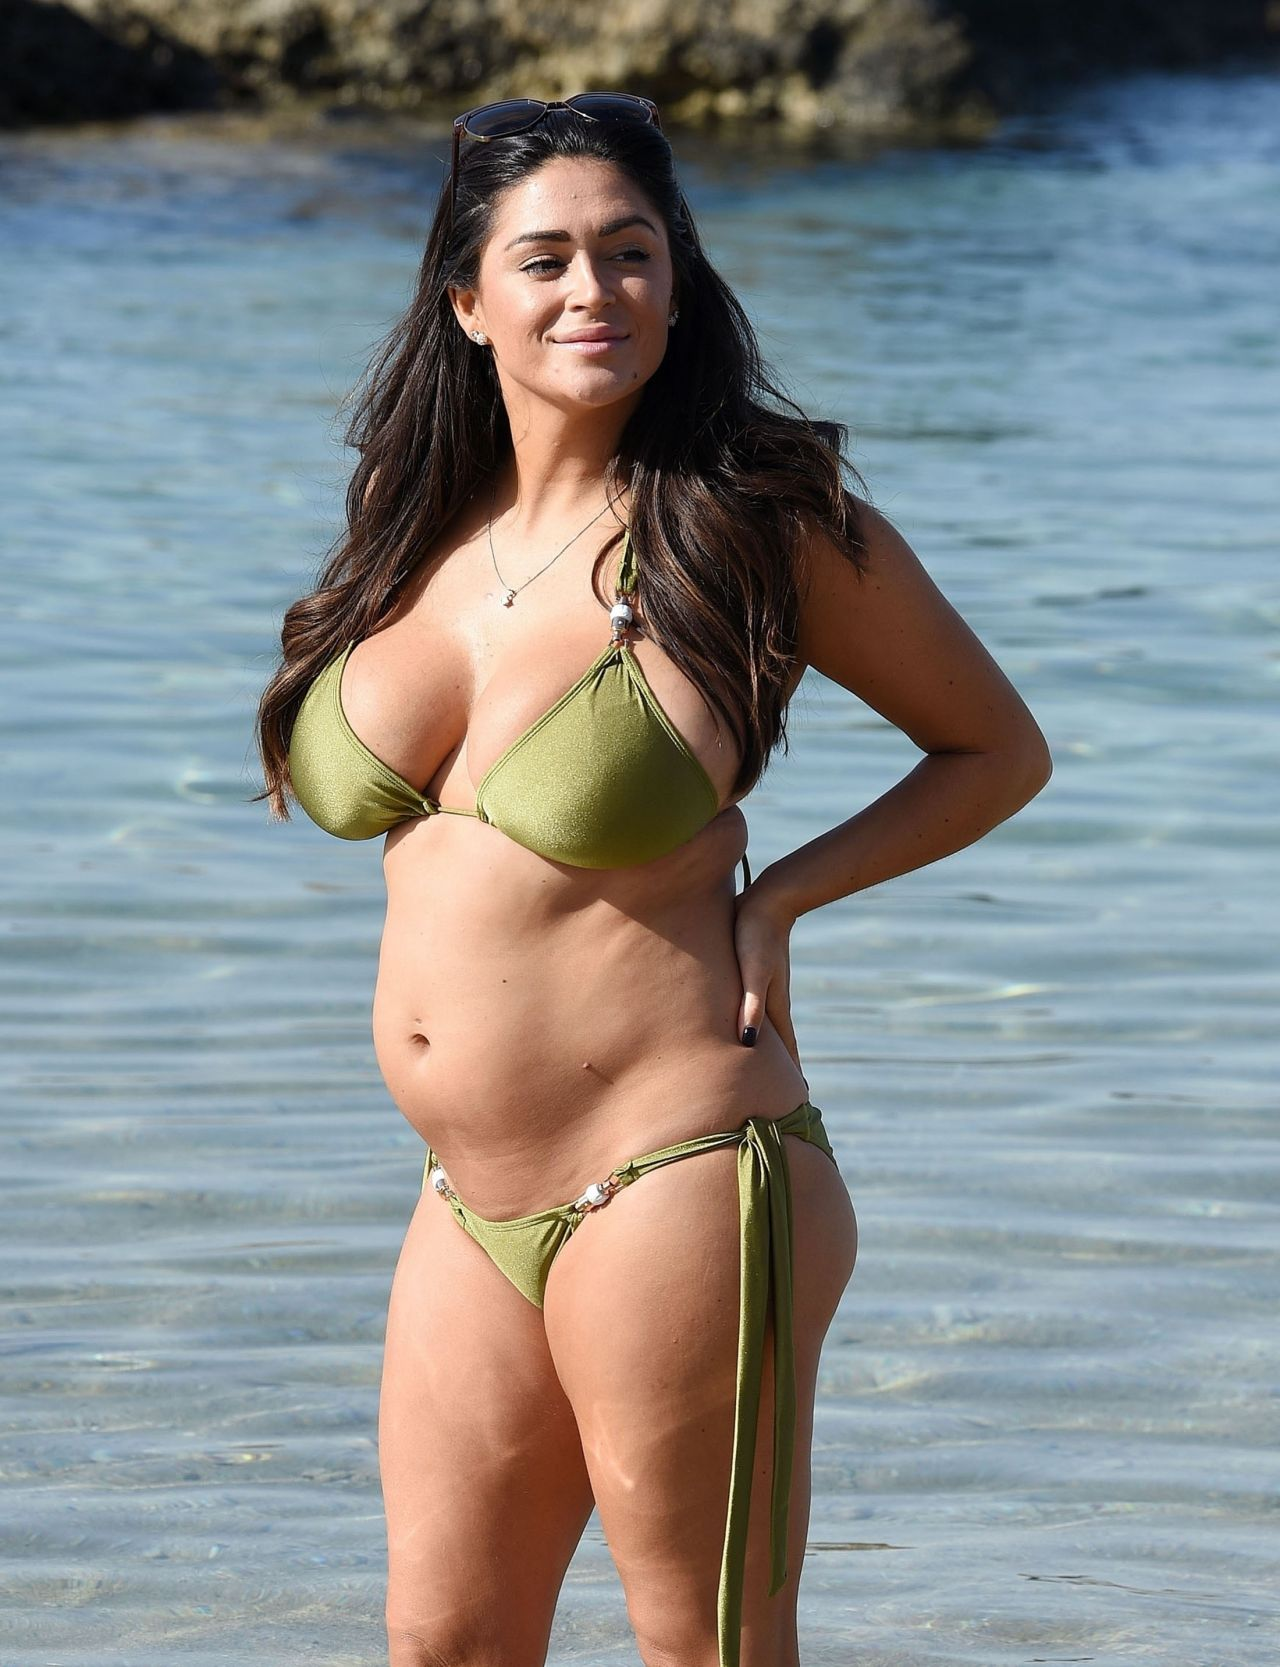 Casey Batchelor in Green Bikini on the beach in Tenerife Pic 1 of 35